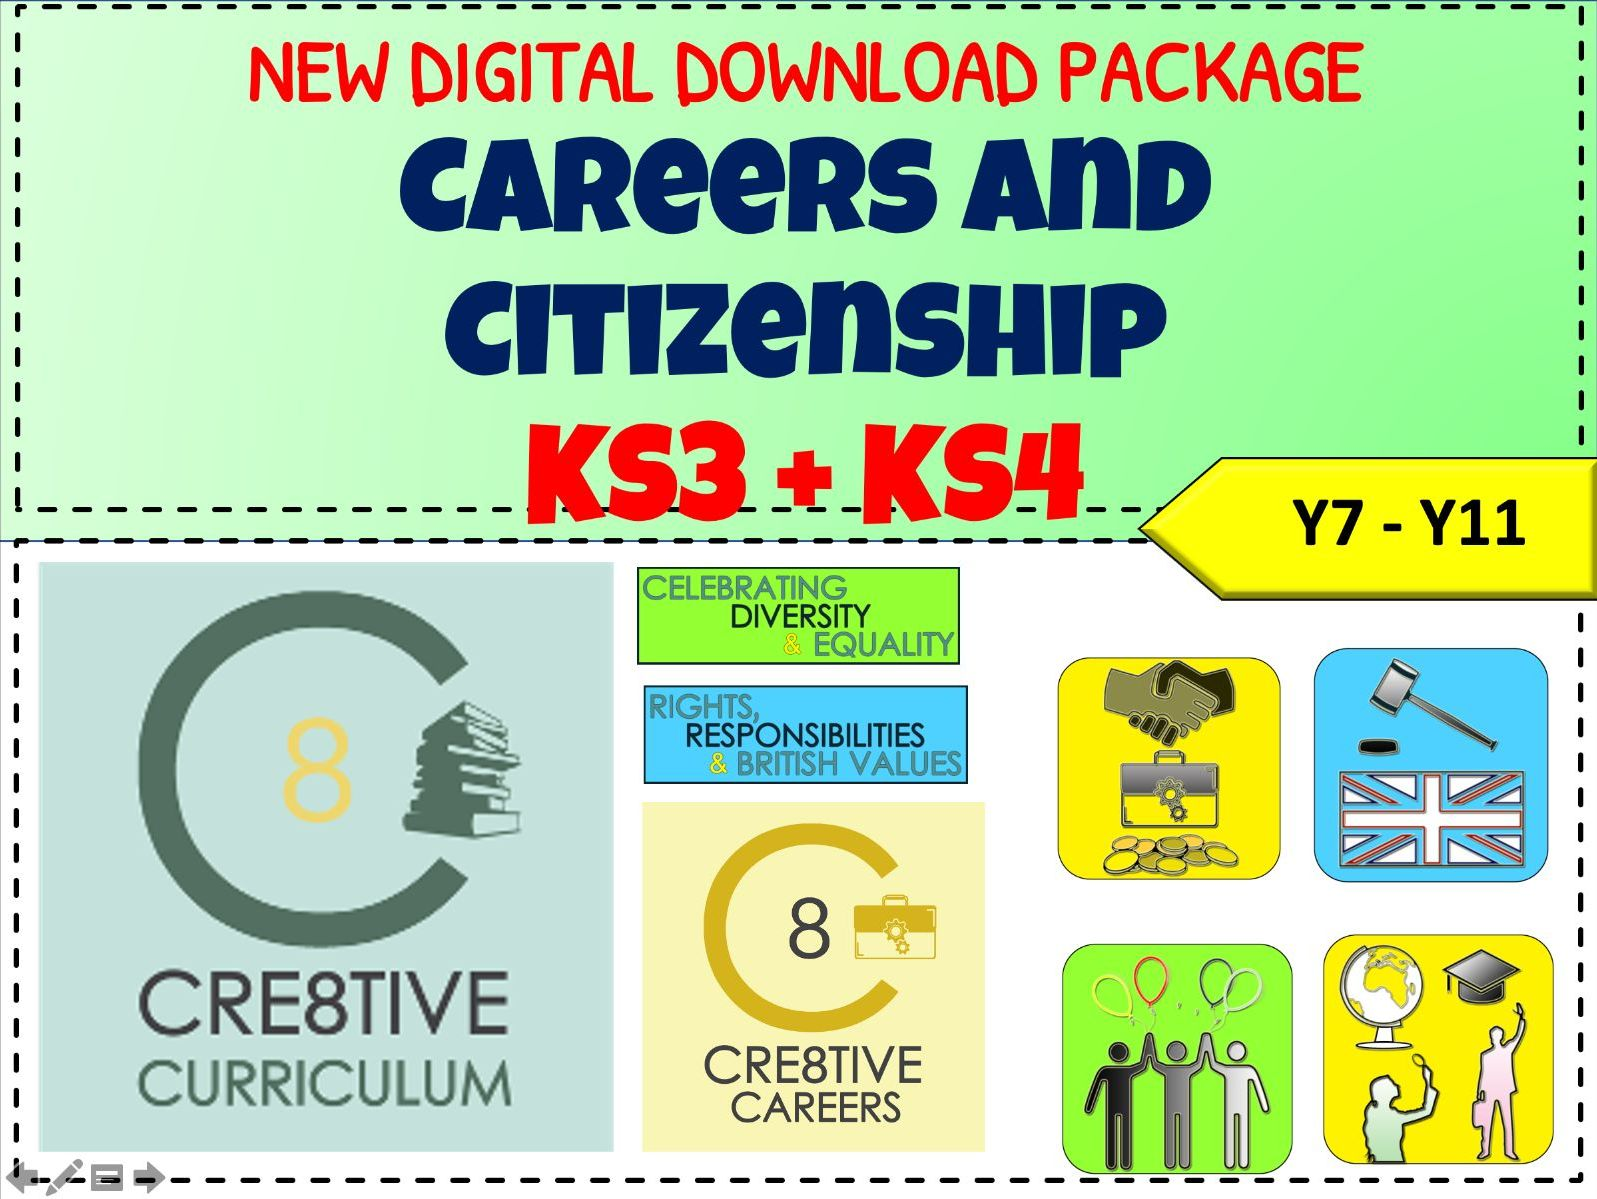 Careers + Citizenship KS3 KS4